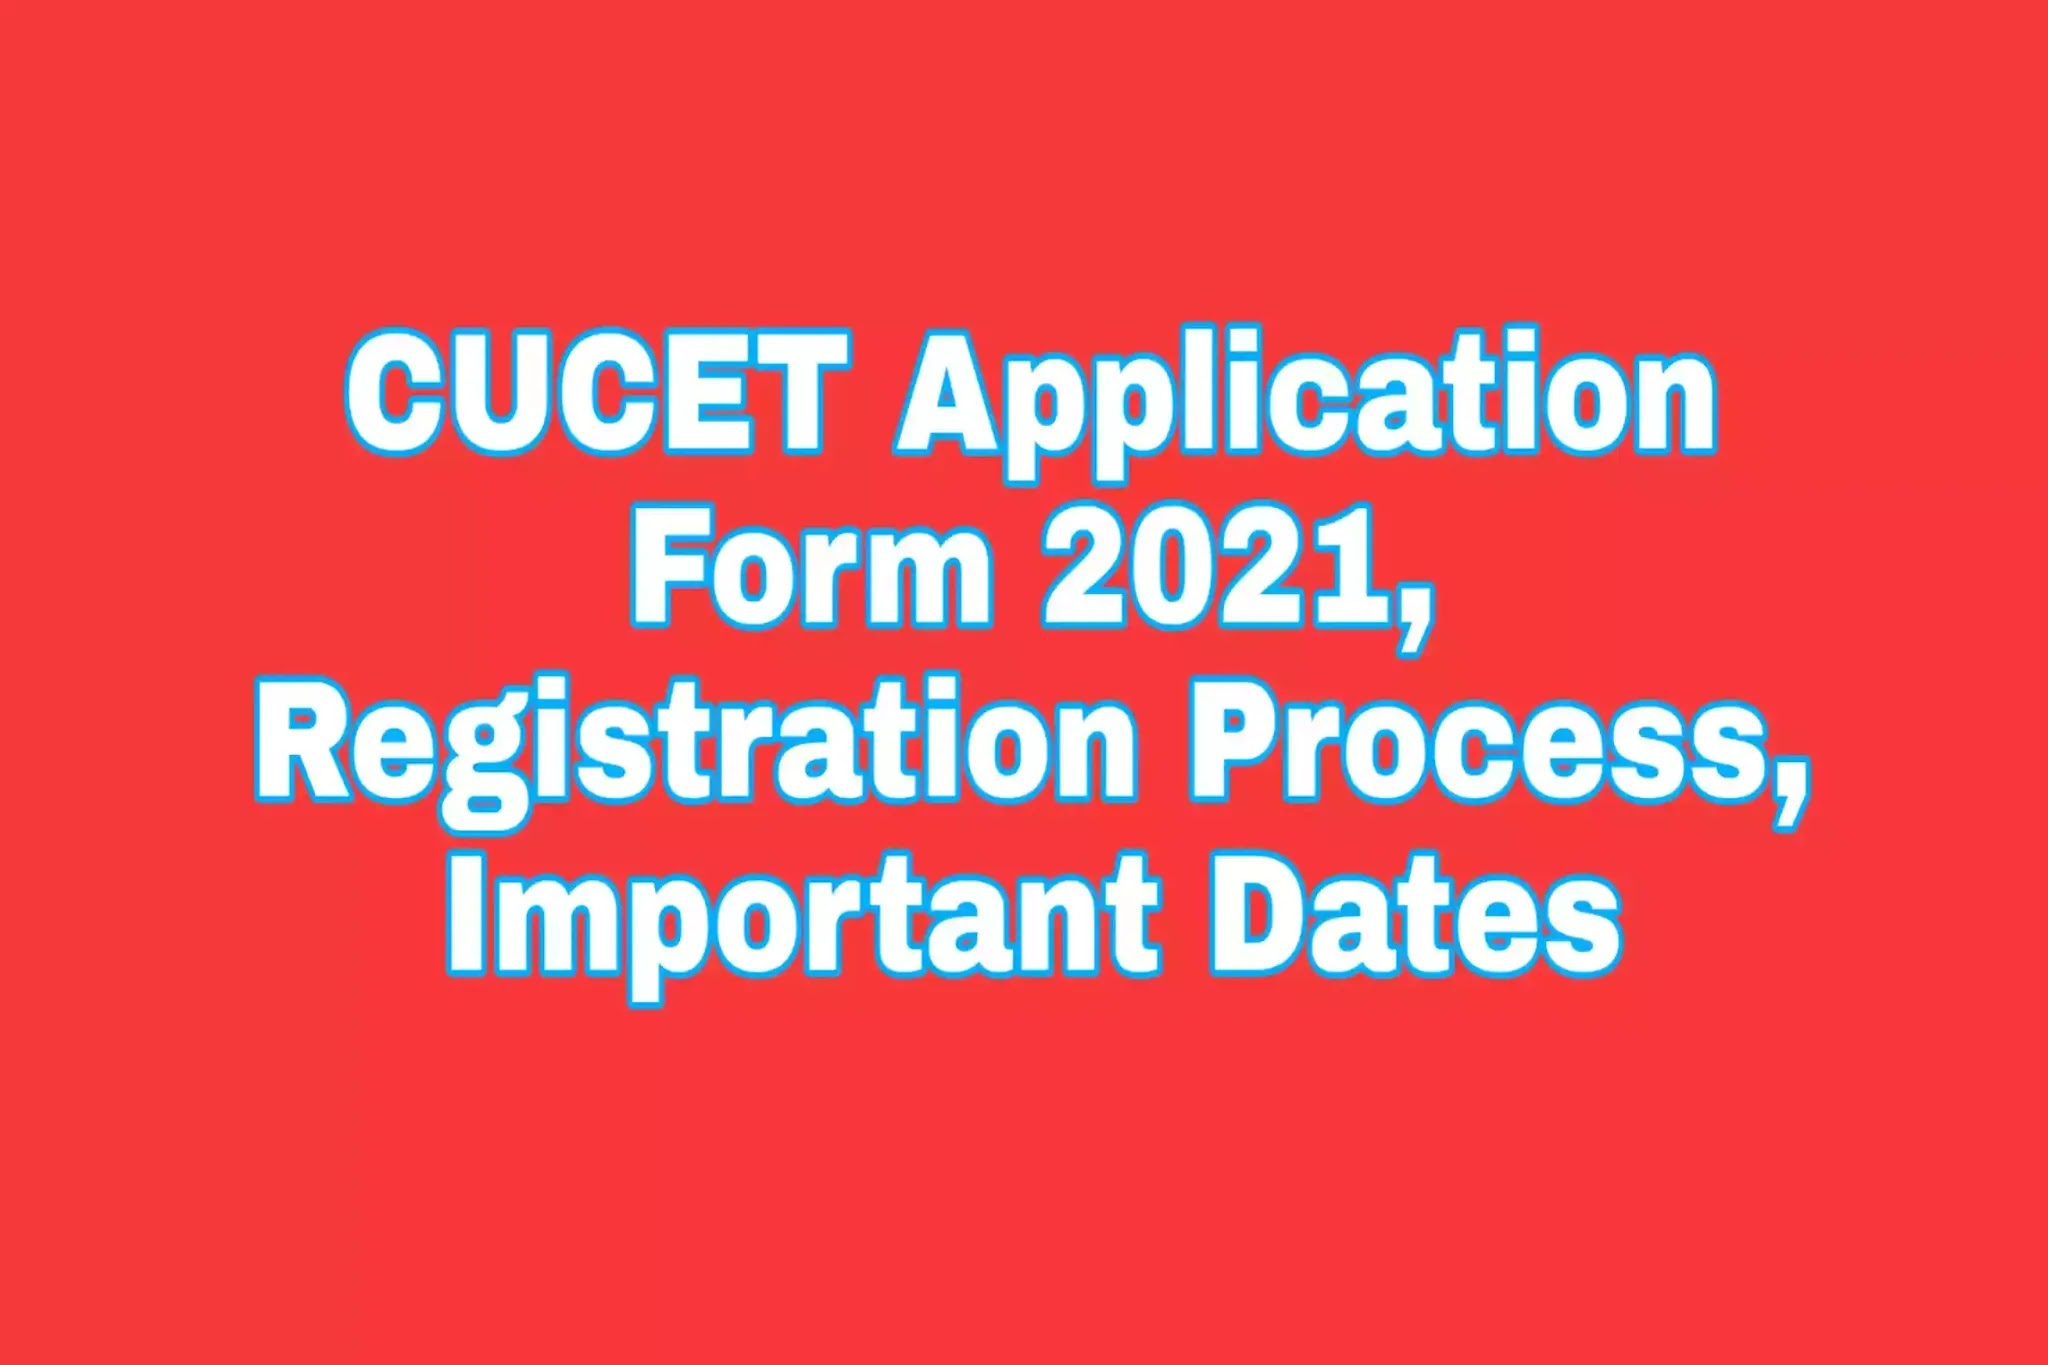 CUCET Application Form 2021, Registration Process, Dates – Apply Here